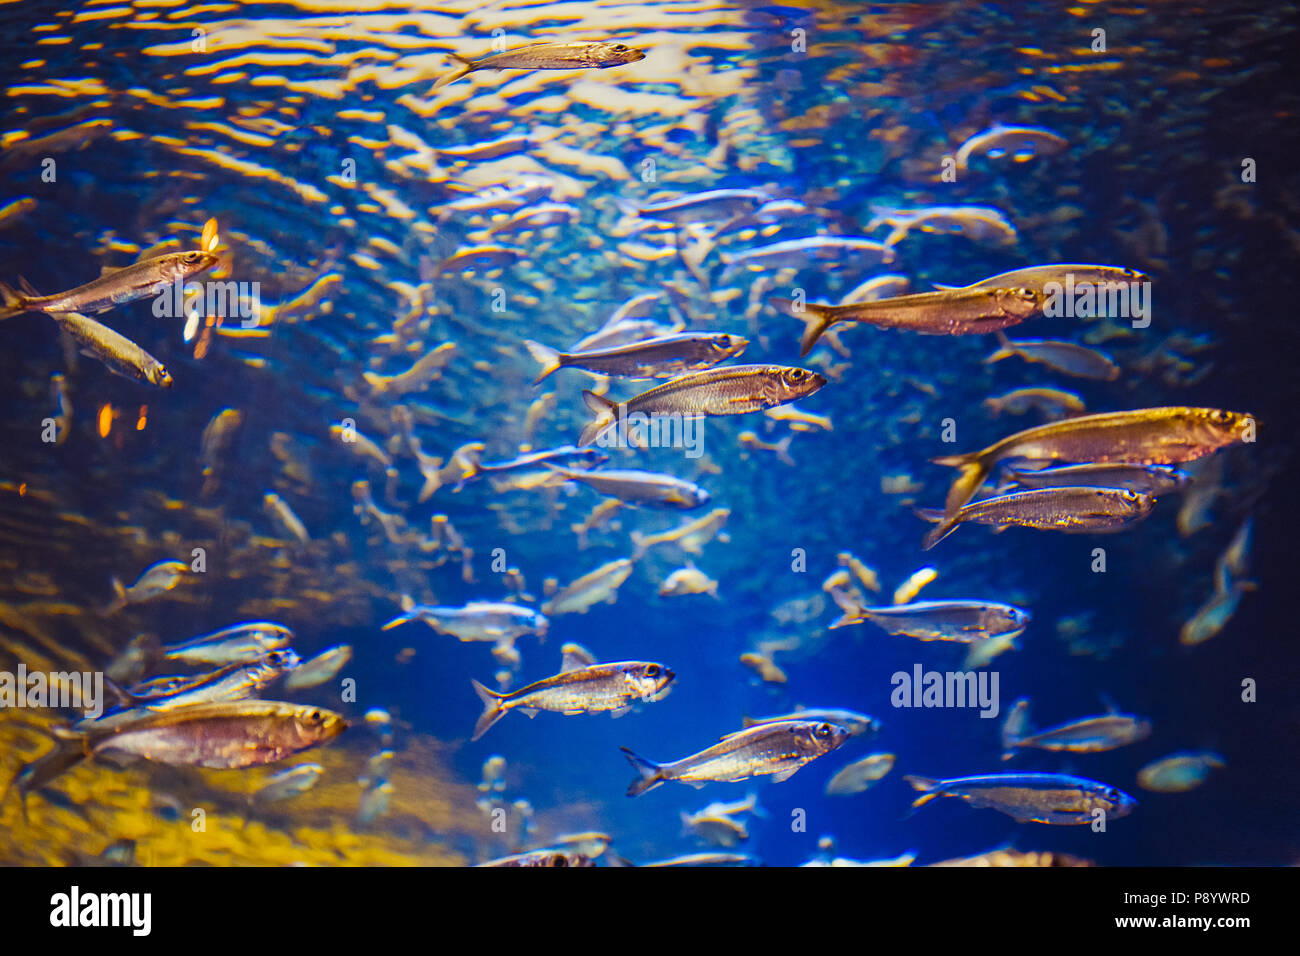 Shoal of red yellow tropical fishes in blue water, colorful clear underwater world, copyspace for text, background wallpaper - Stock Image